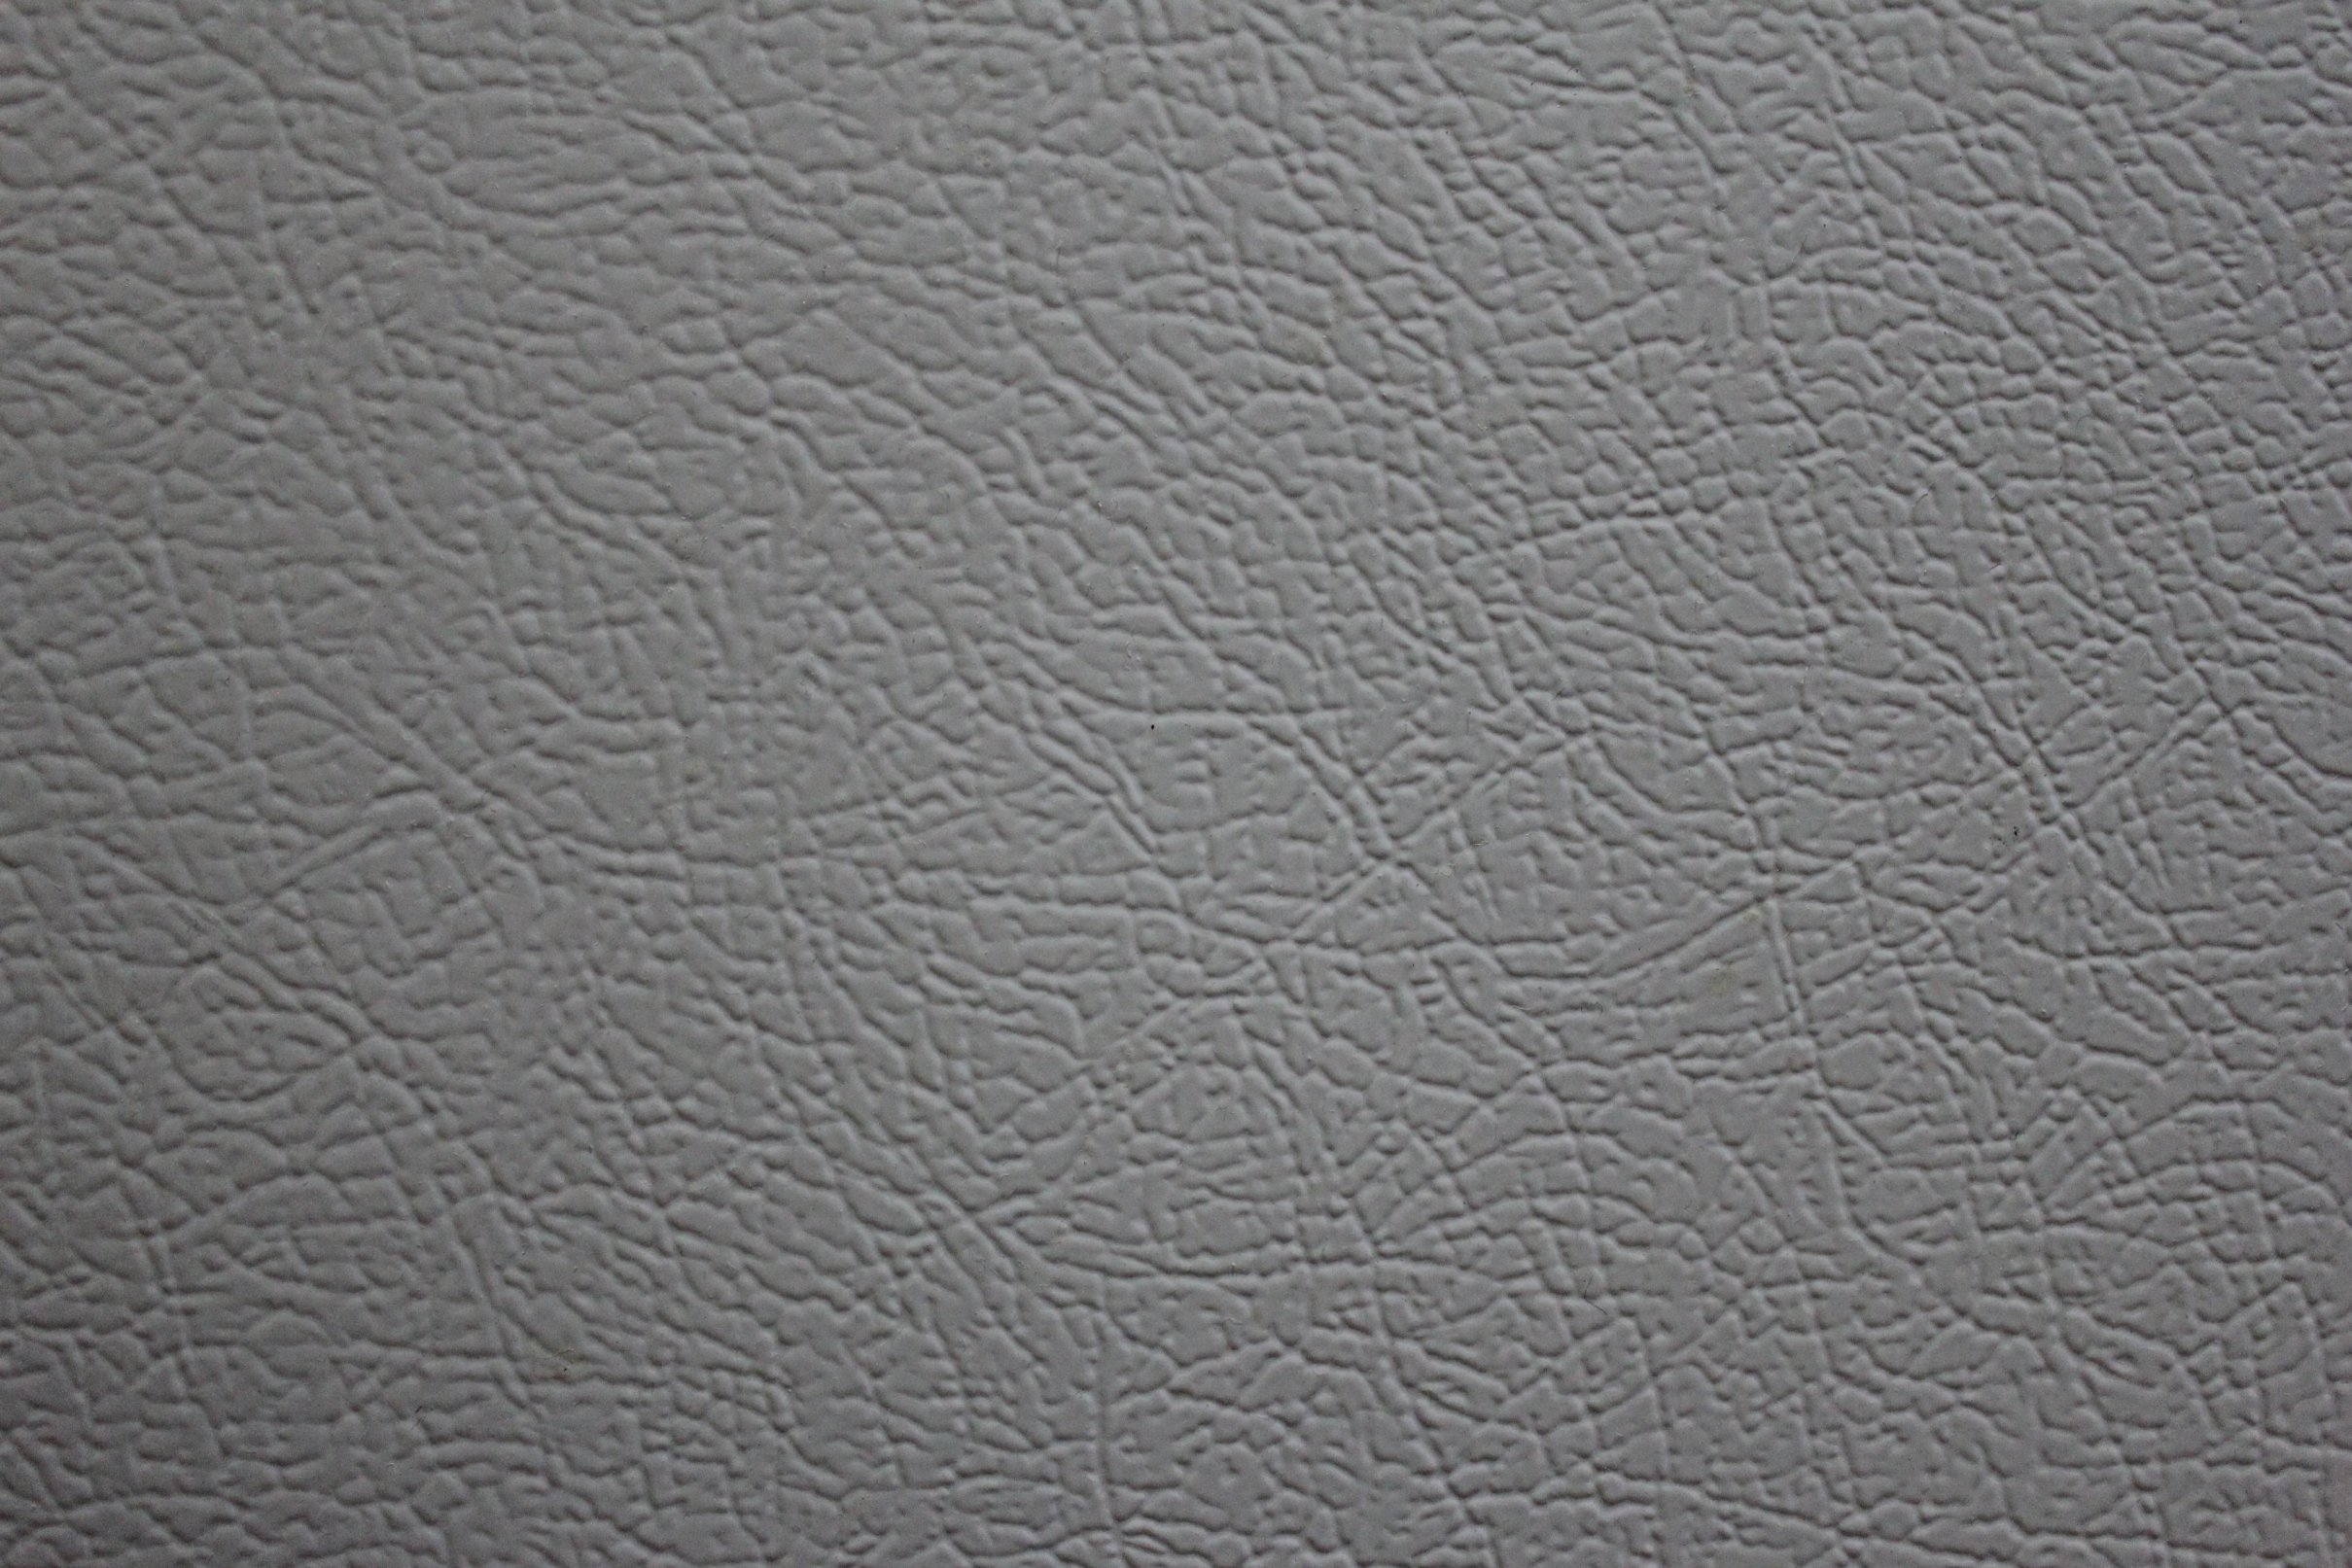 File Gfp Fridge Door Texture Jpg Wikimedia Commons Interiors Inside Ideas Interiors design about Everything [magnanprojects.com]